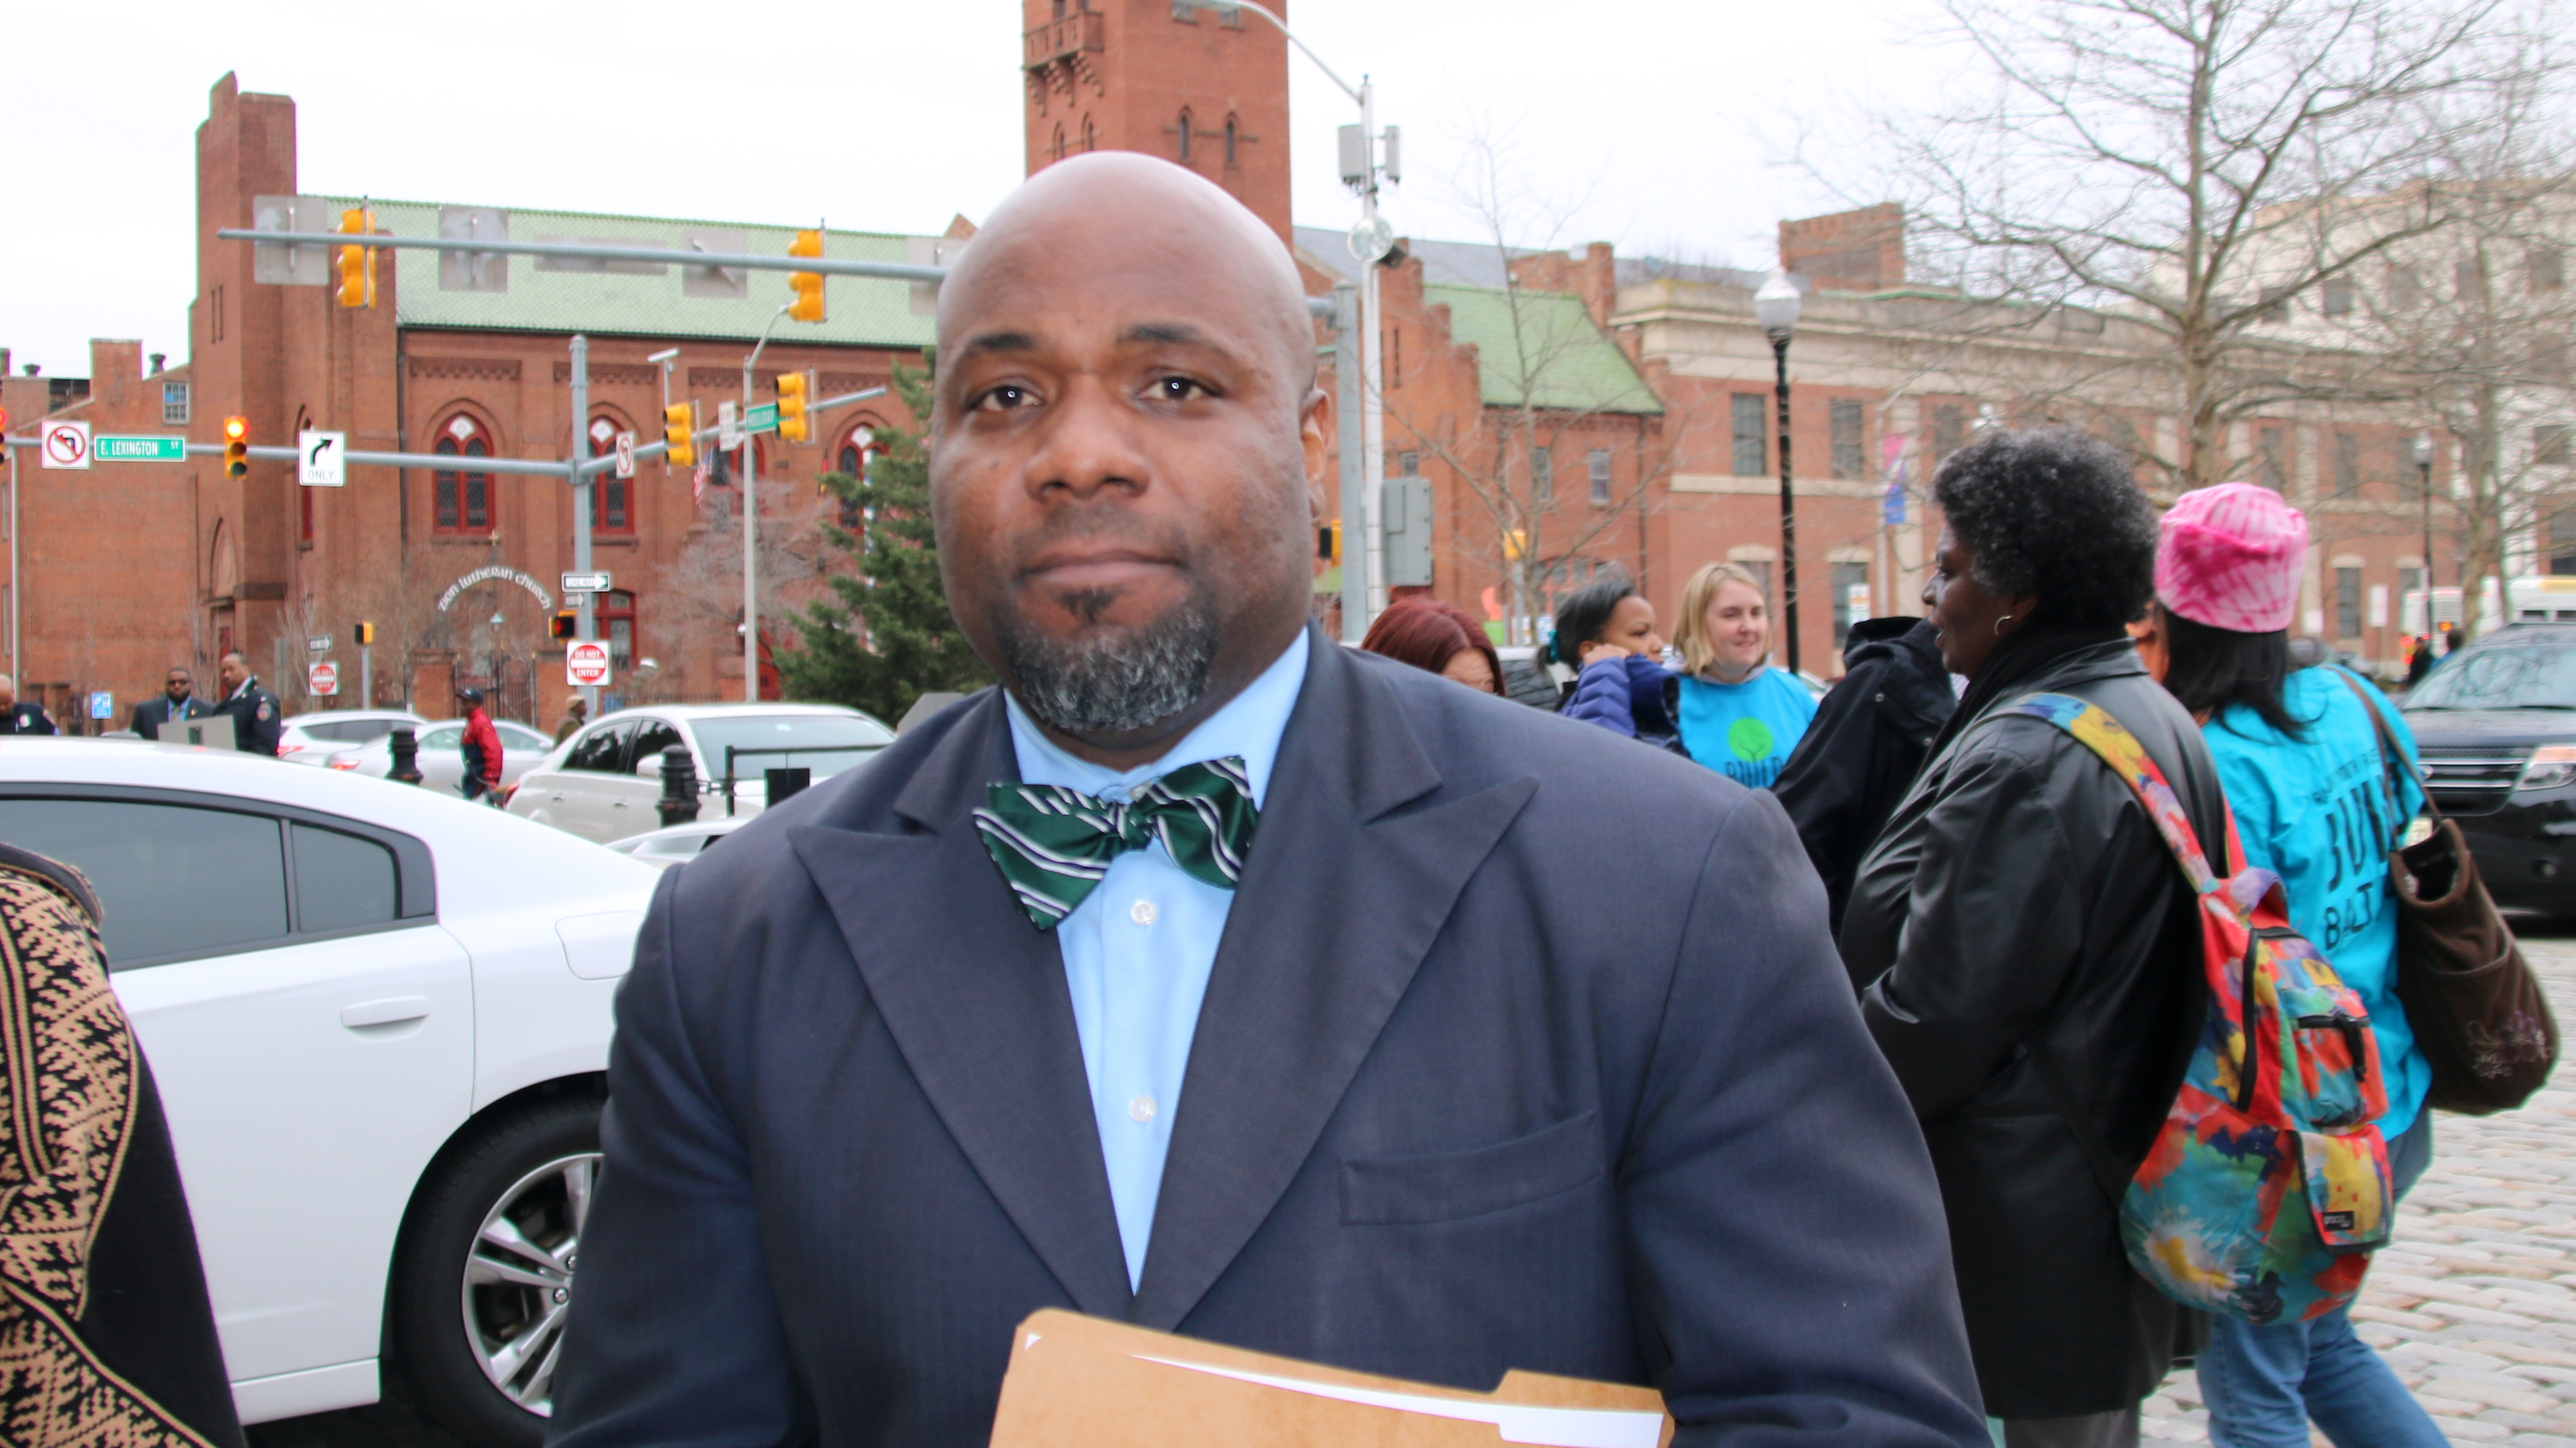 Craig Rivers was one of 50 principals who rallied outside City Hall caliing on city leaders to help close the budget gap. (Fern Shen)